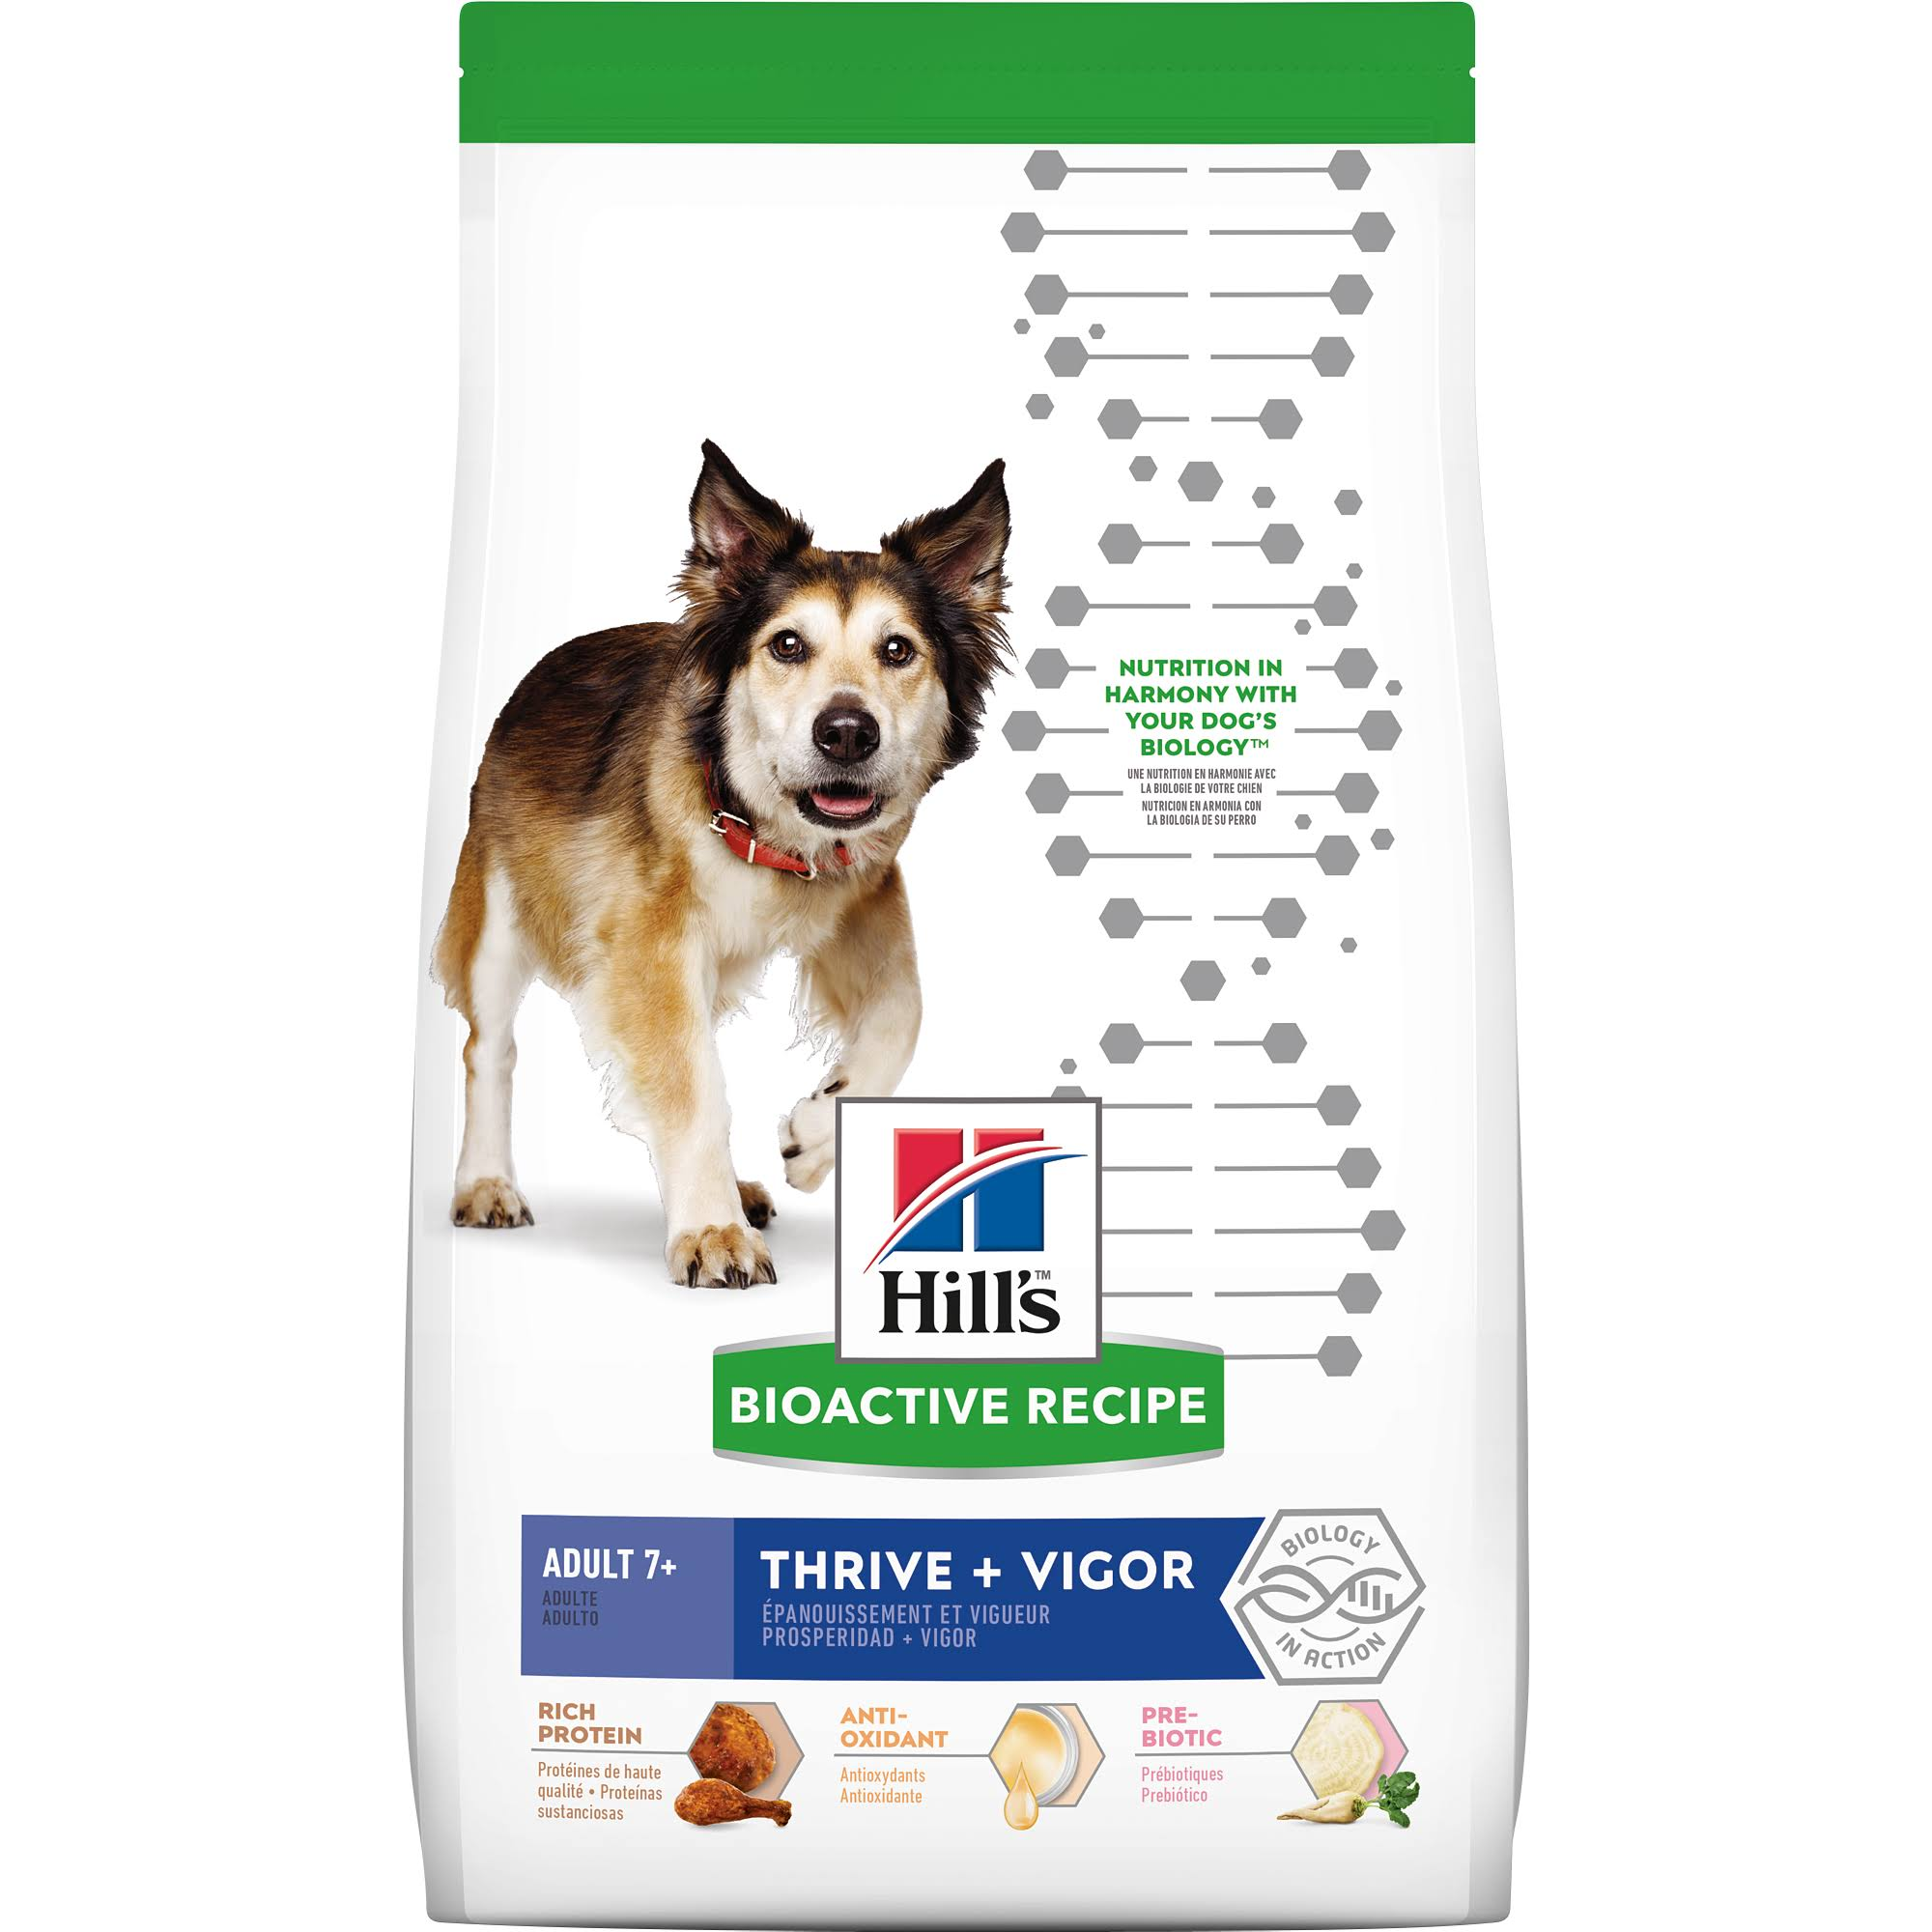 Hill's 21.5 lbs Bioactive Recipe Thrive + Vigor Adult Breed Dry Dog Food